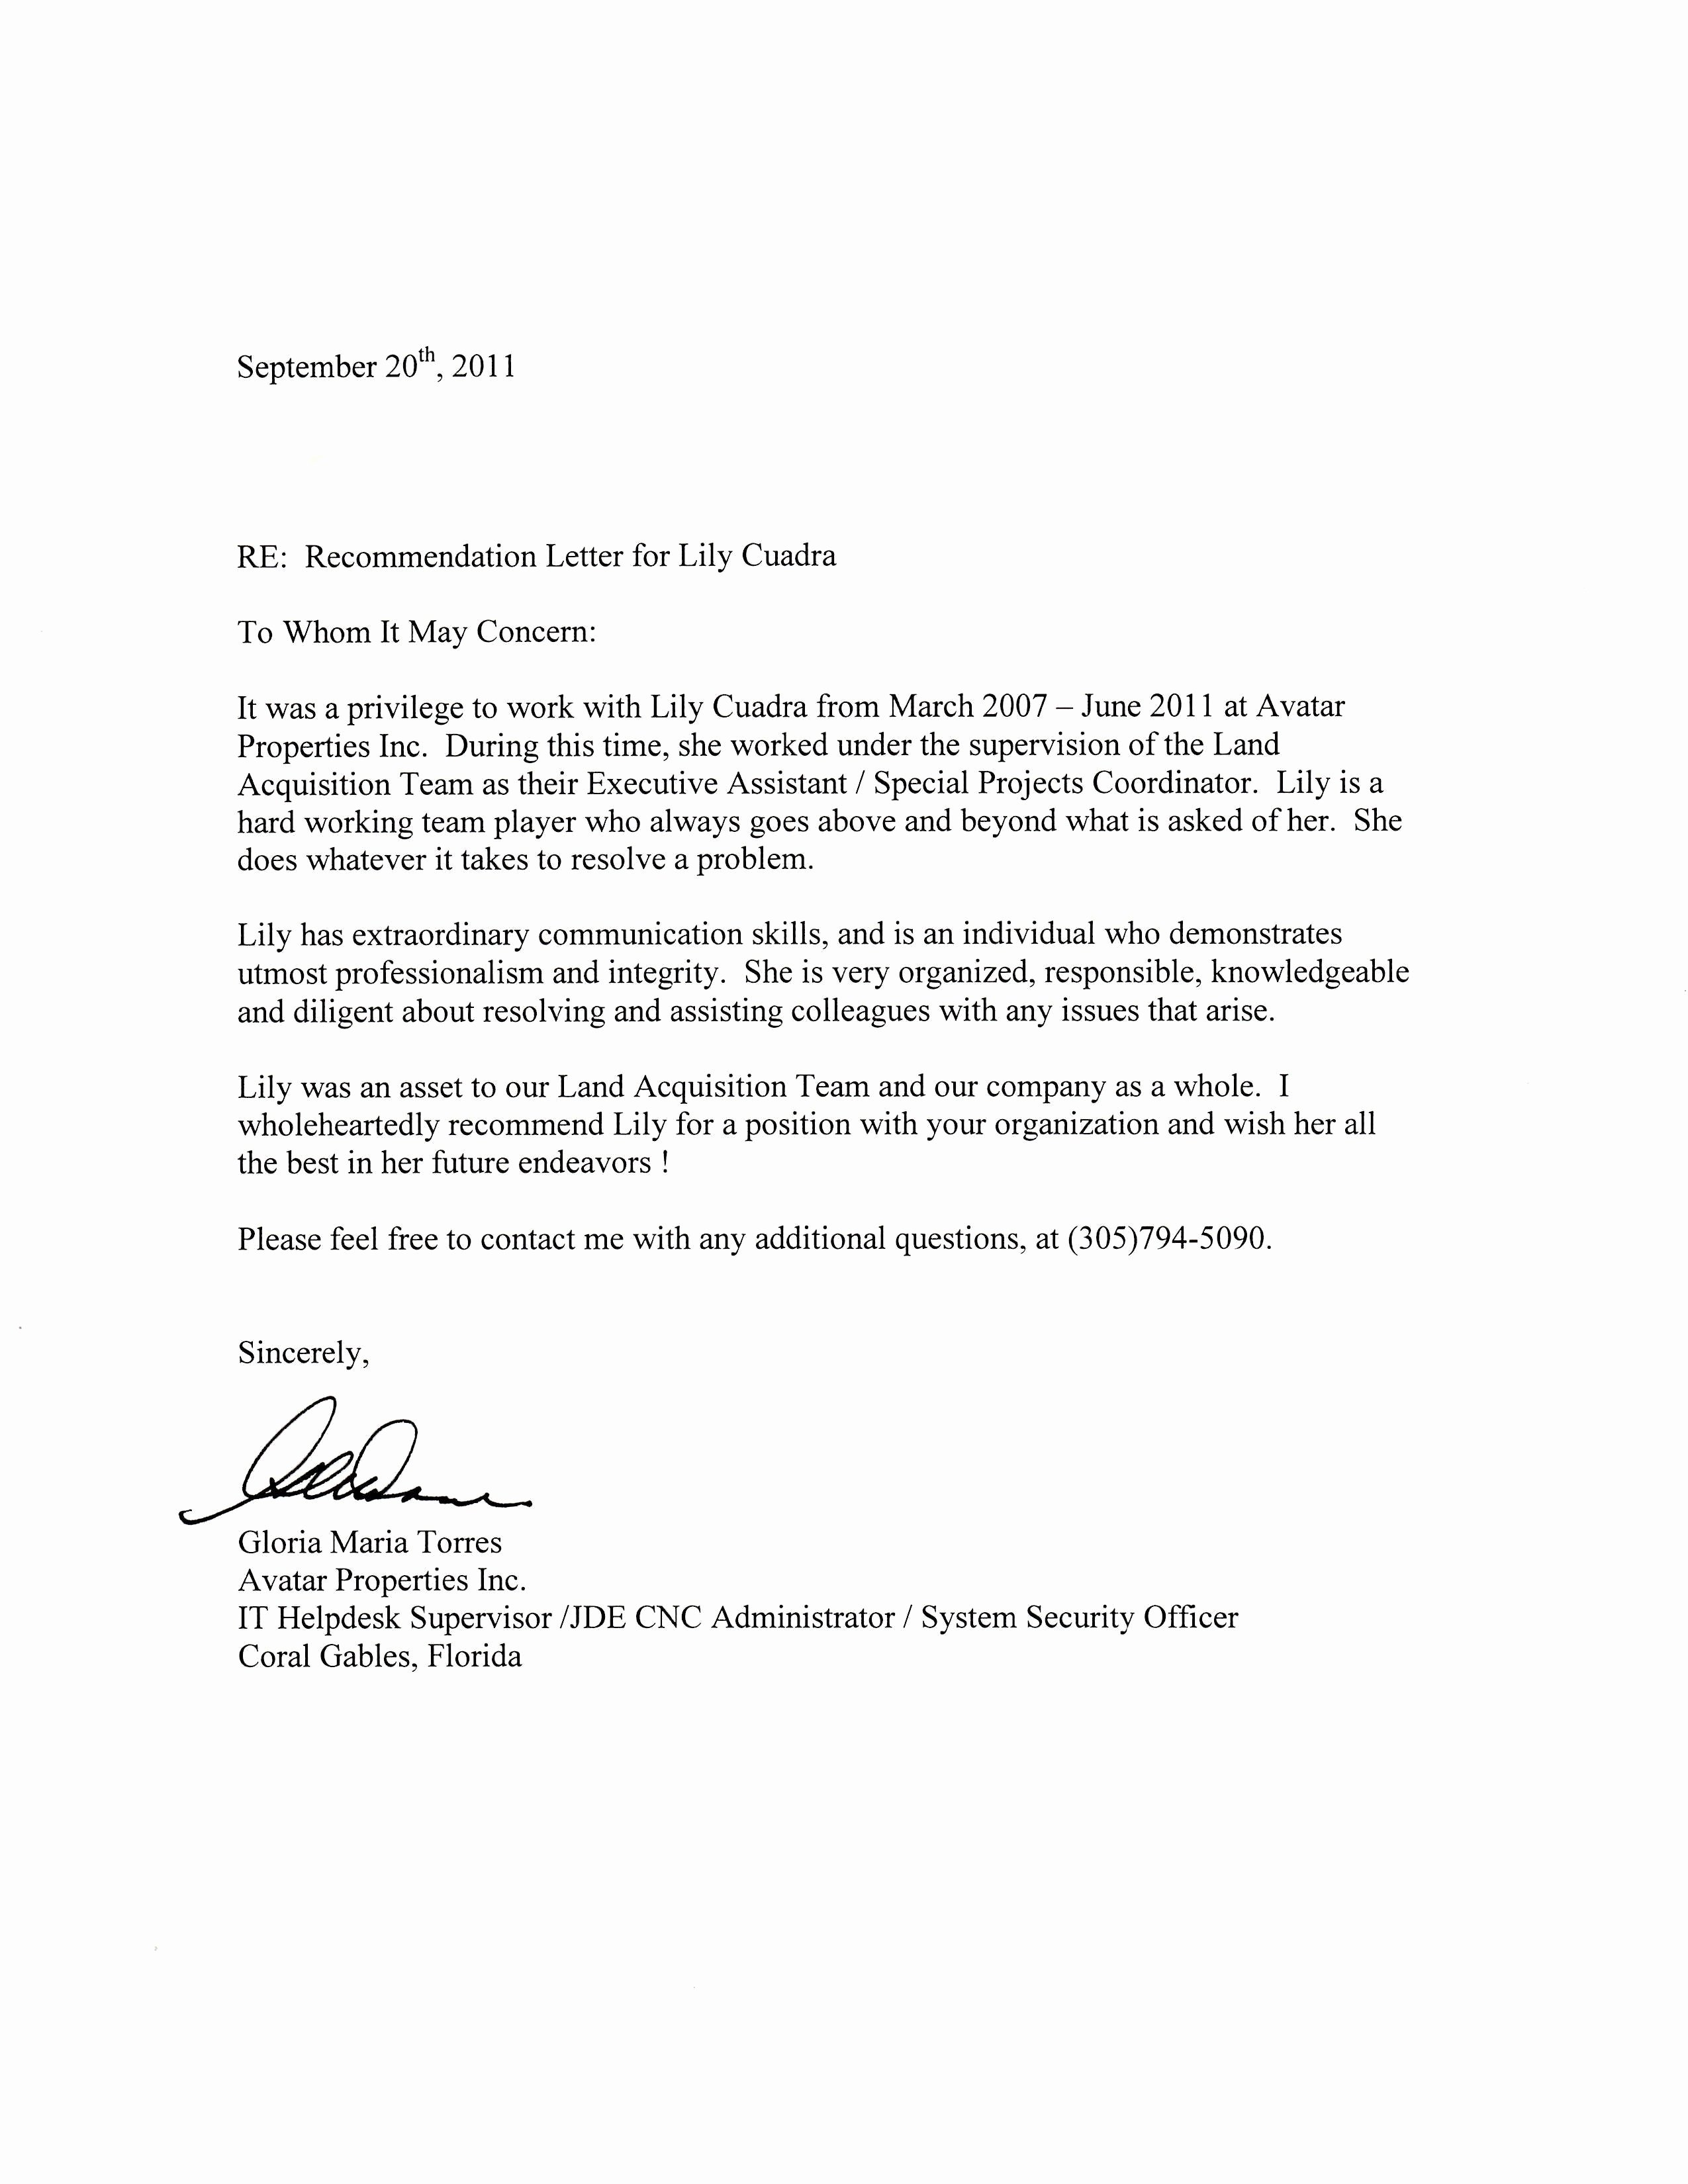 Template Of Letter Of Recommendation Fresh Simple Guide Professional Reference Letter with Samples